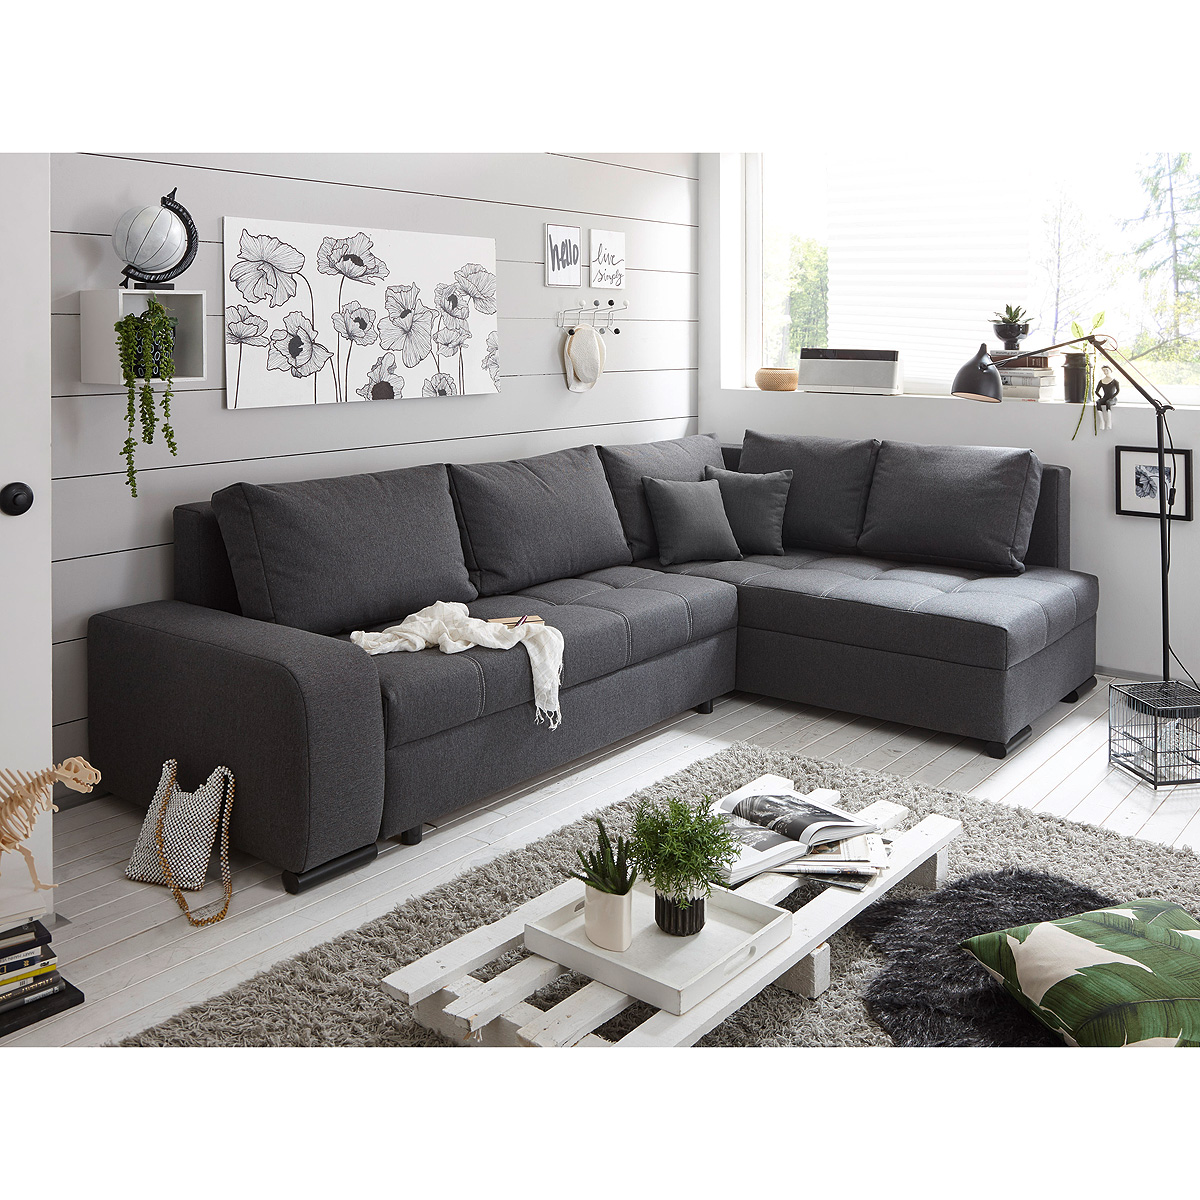 ecksofa lukas wohnlandschaft sofa polsterm bel in anthrazit mit funktion ebay. Black Bedroom Furniture Sets. Home Design Ideas